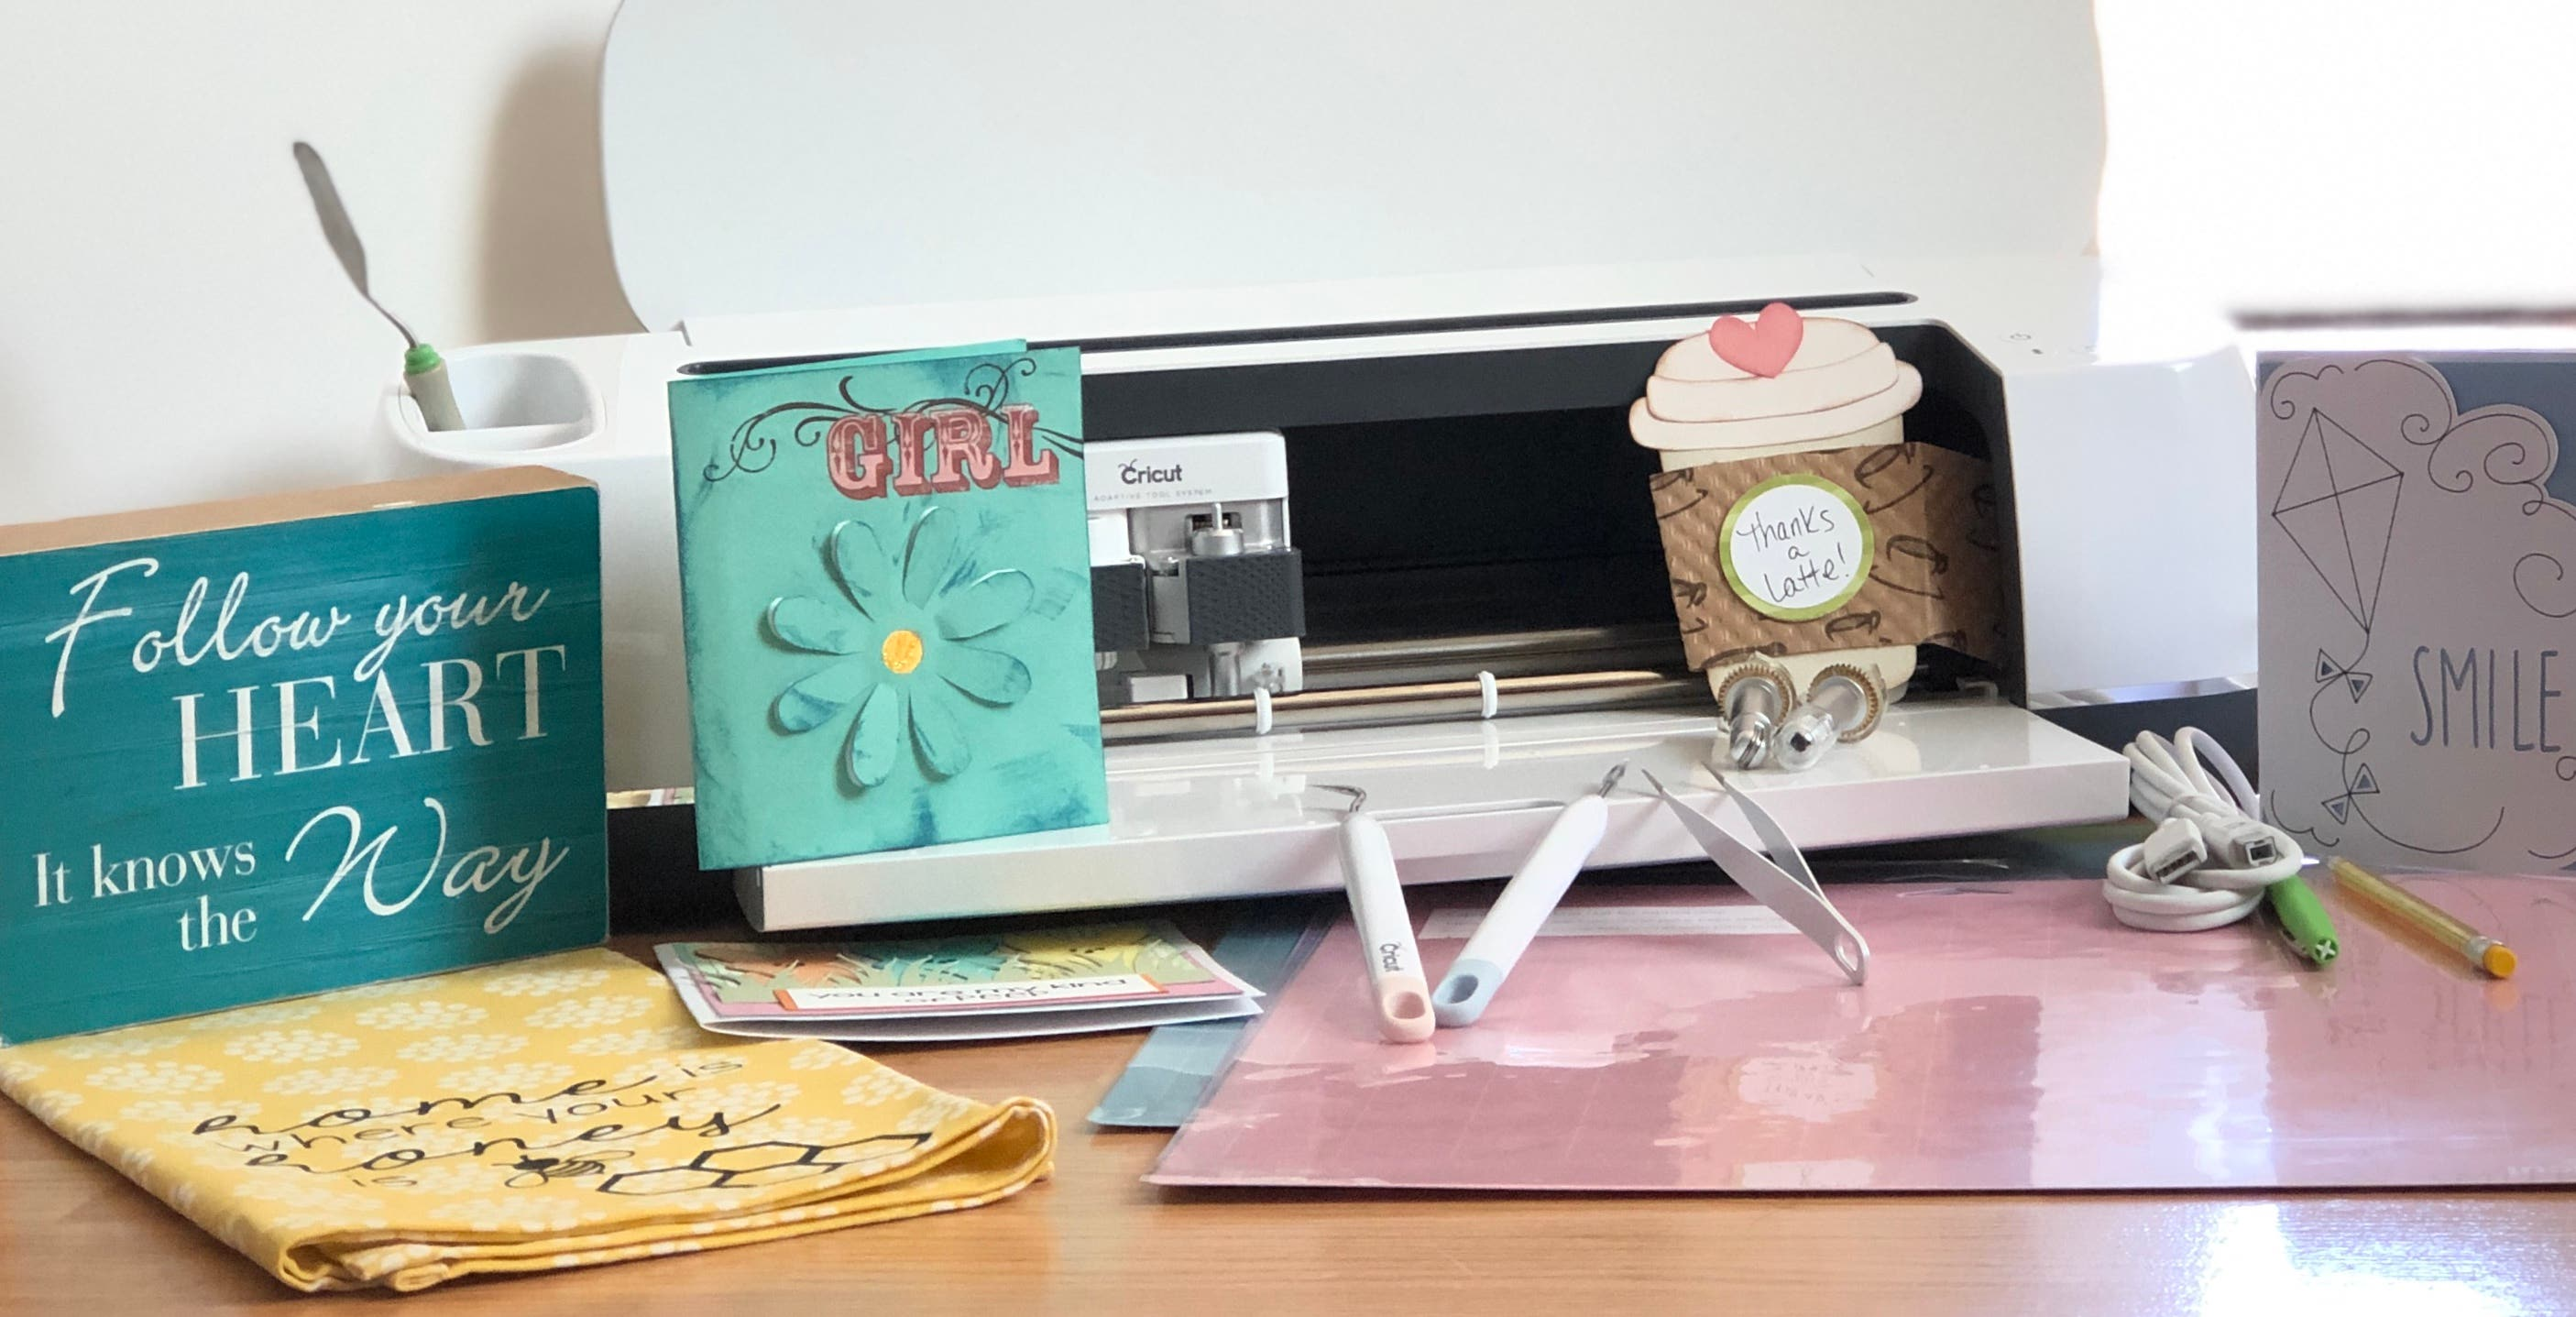 cards and cricut tools with cricut machine